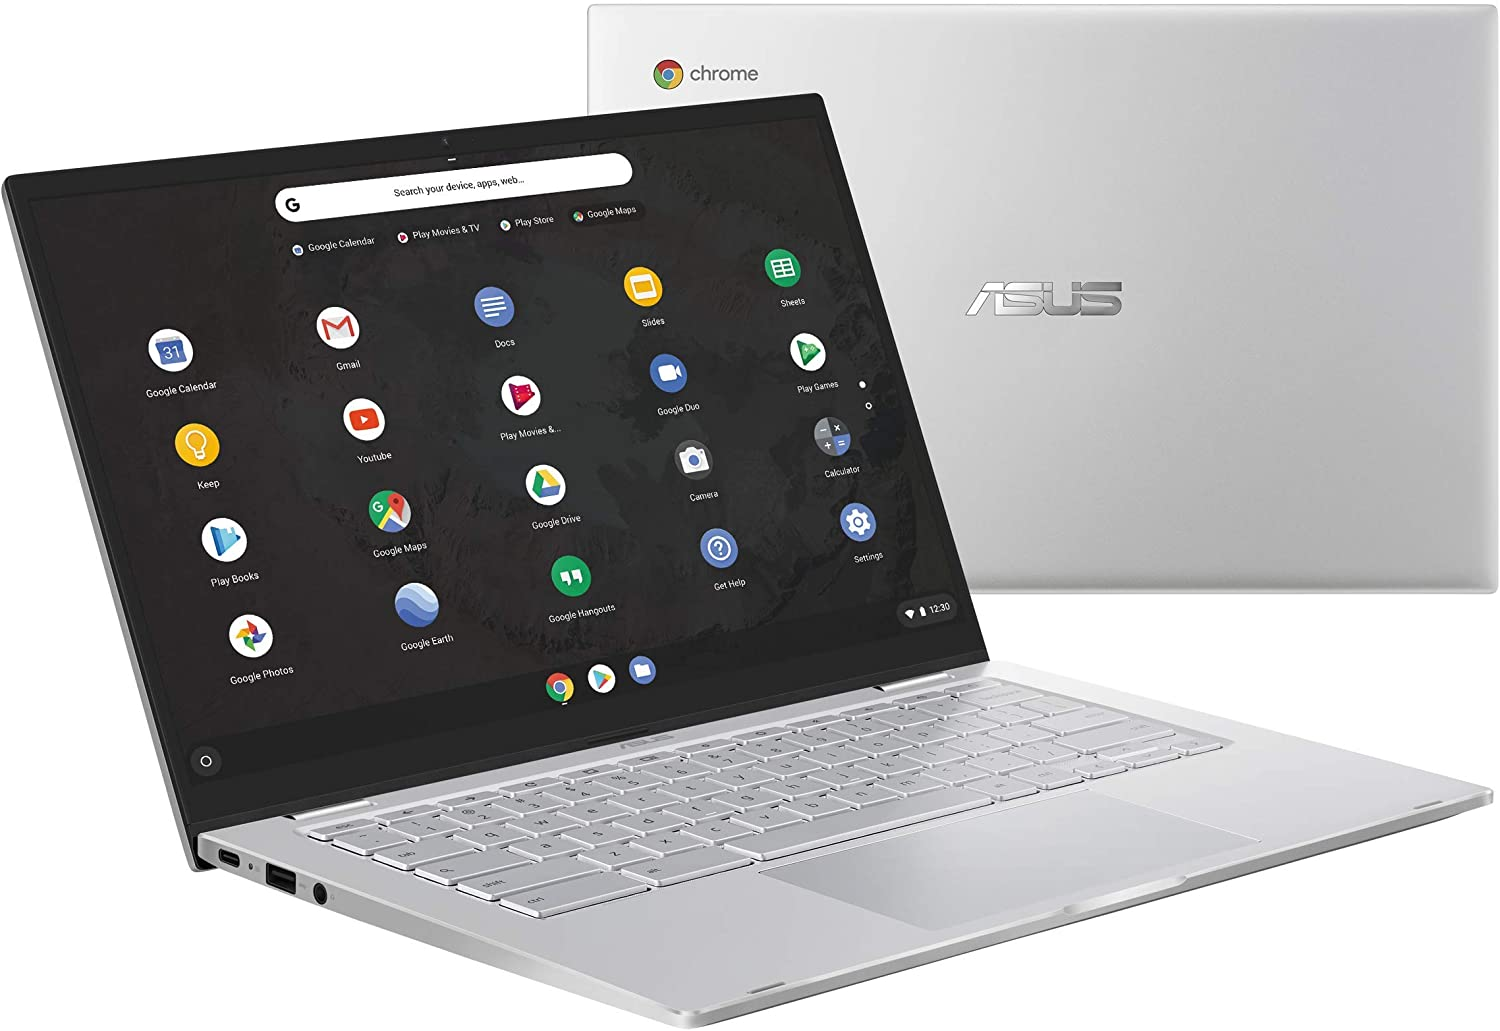 "ASUS Chromebook C425 Laptop- 14"" Full HD 4-way NanoEdge, Intel Core M3-8100Y Processor, 8GB RAM, 64GB eMMC Storage, Backlit KB, Chrome OS, C425TA-DH384 Silver"